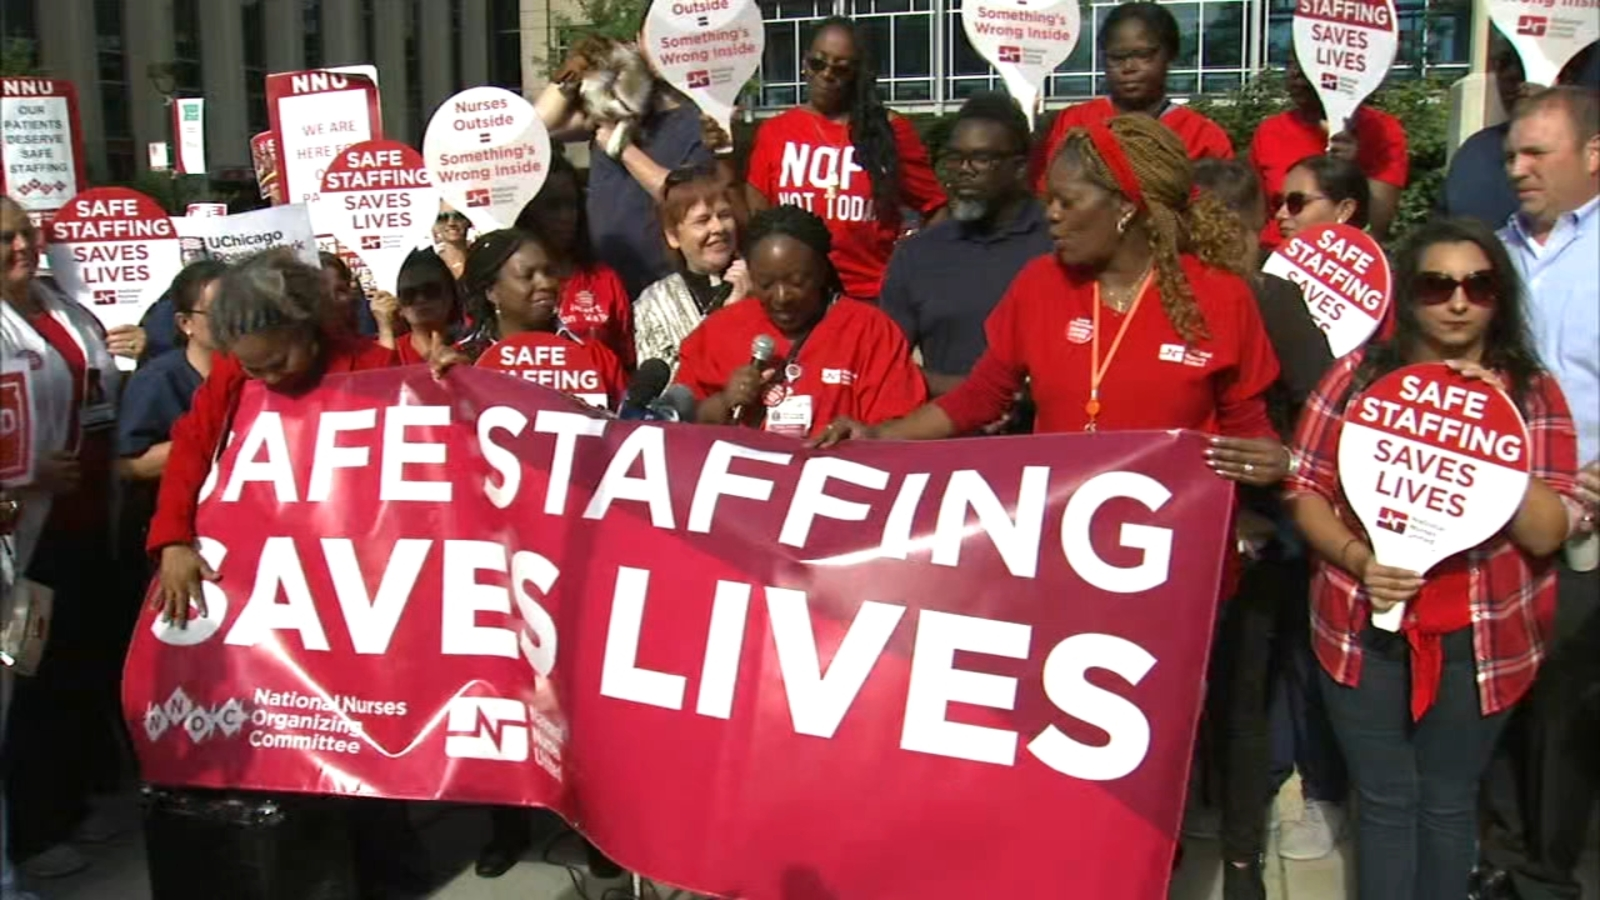 Nurses United picket at UCMC over patient care, safety concerns